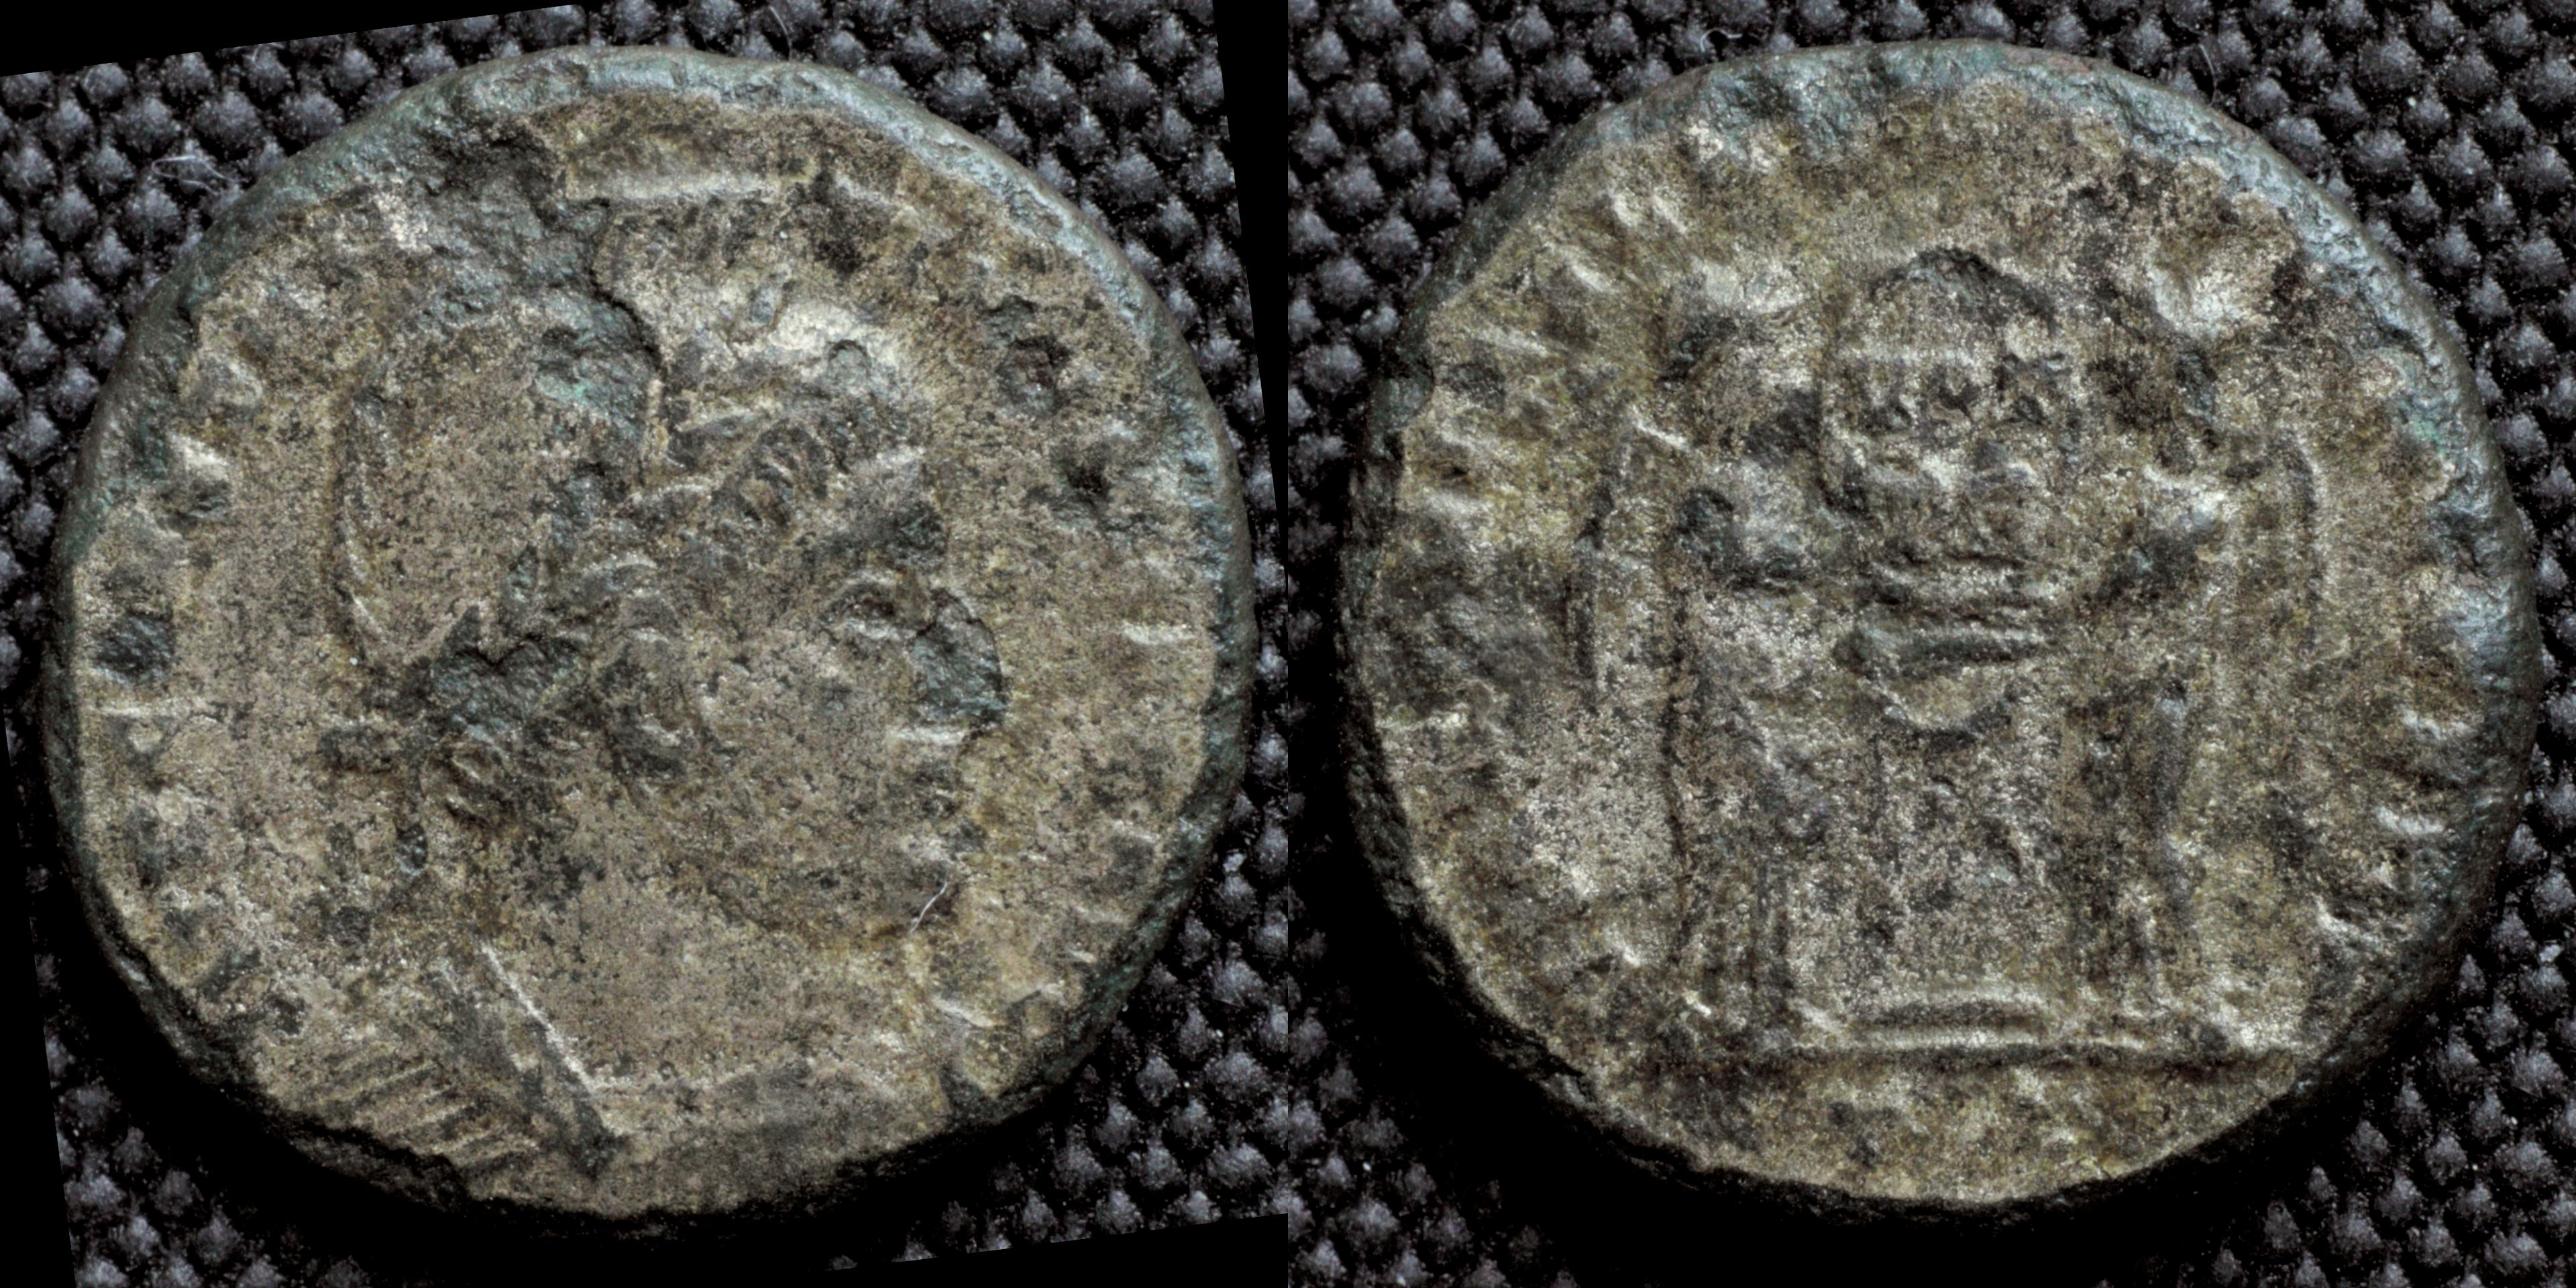 /Files/Images/Coinsite/CoinDB/47_Constantine_I_Ticinum.jpg